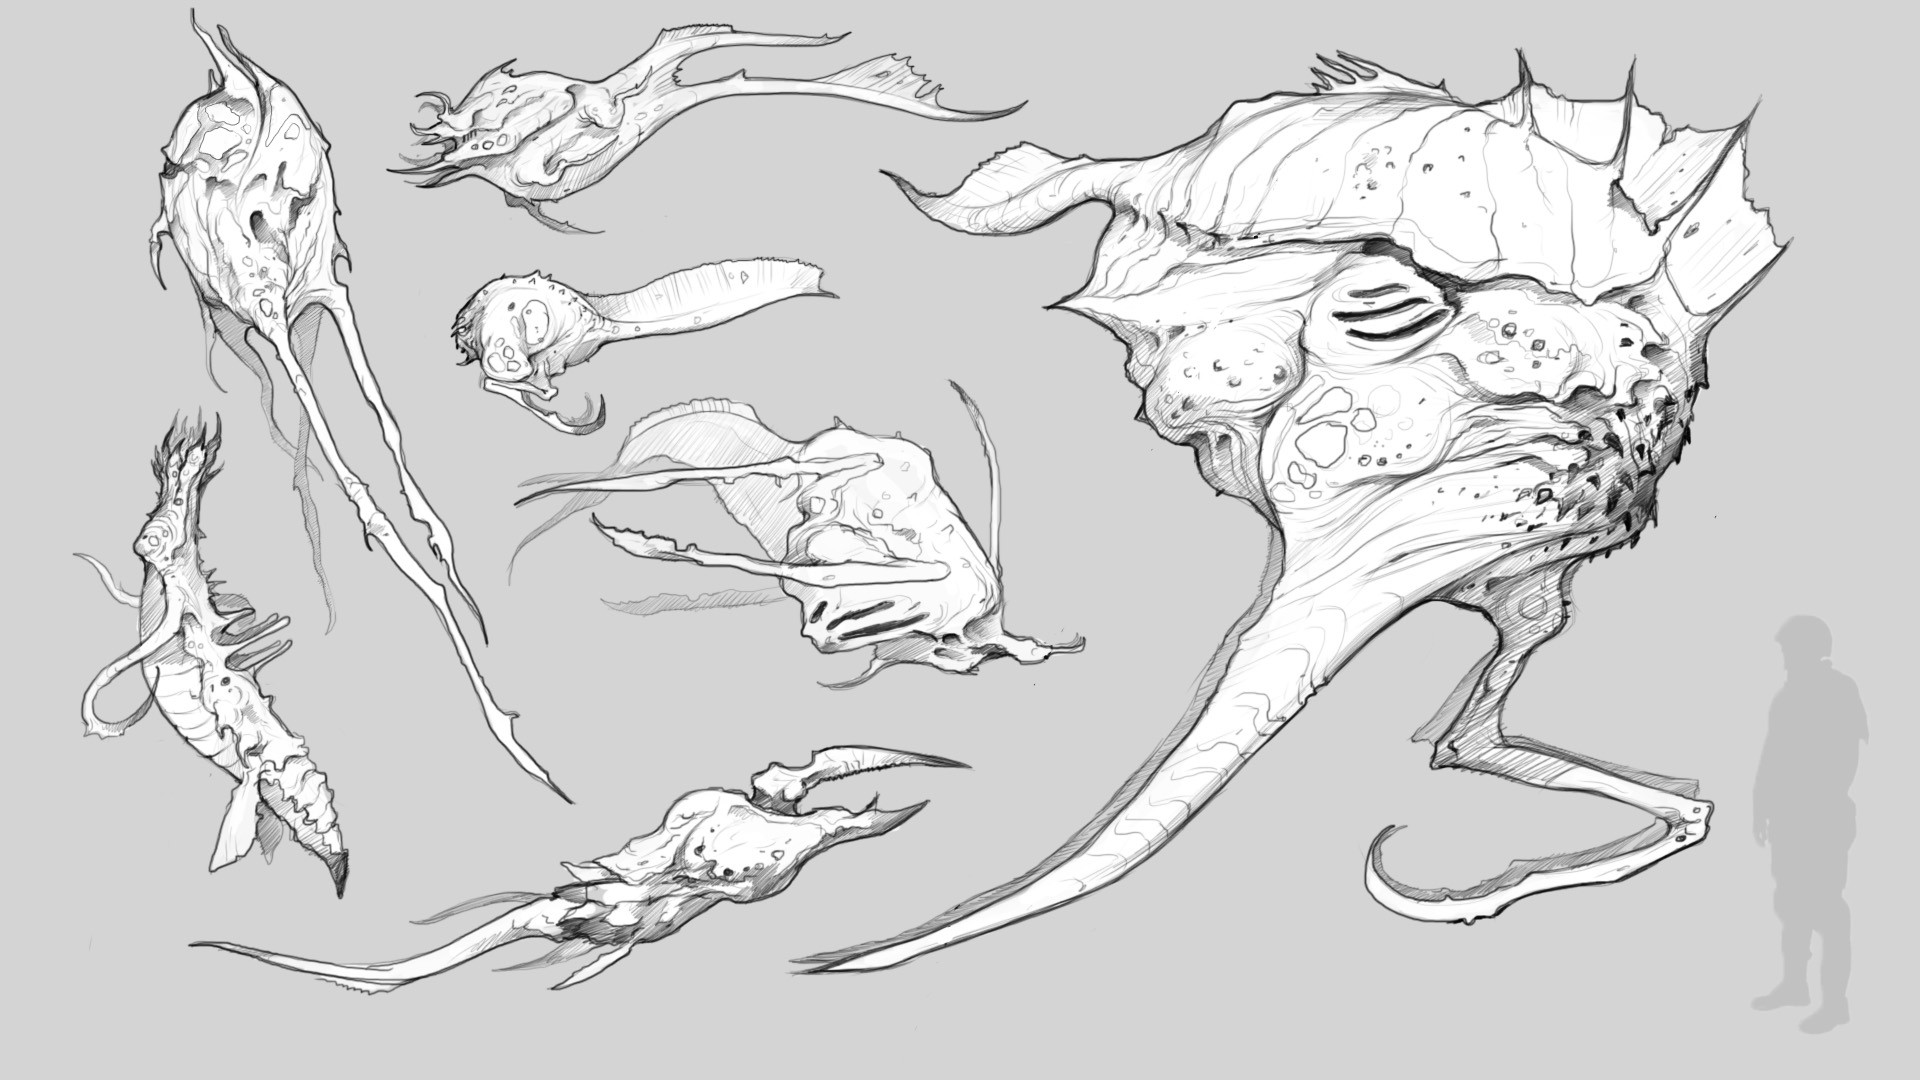 Bobby rebholz creaturesketchesweek2